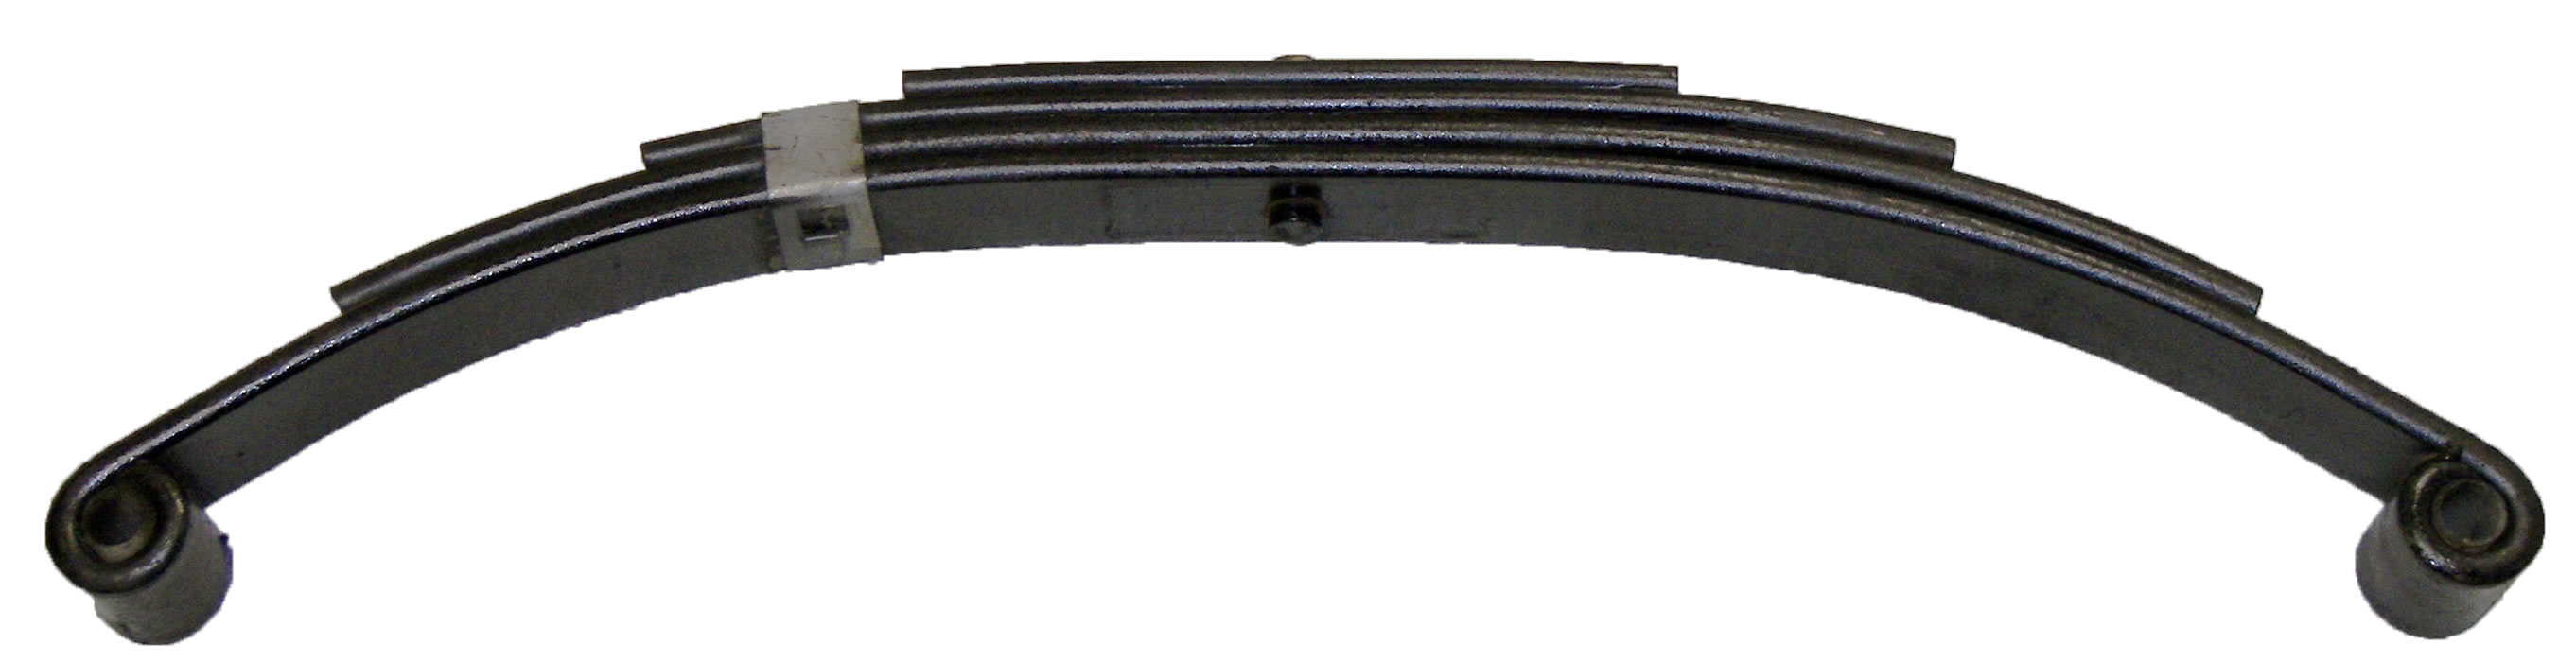 014-125799 AP Products Leaf Spring 2-1/2 Inch Height